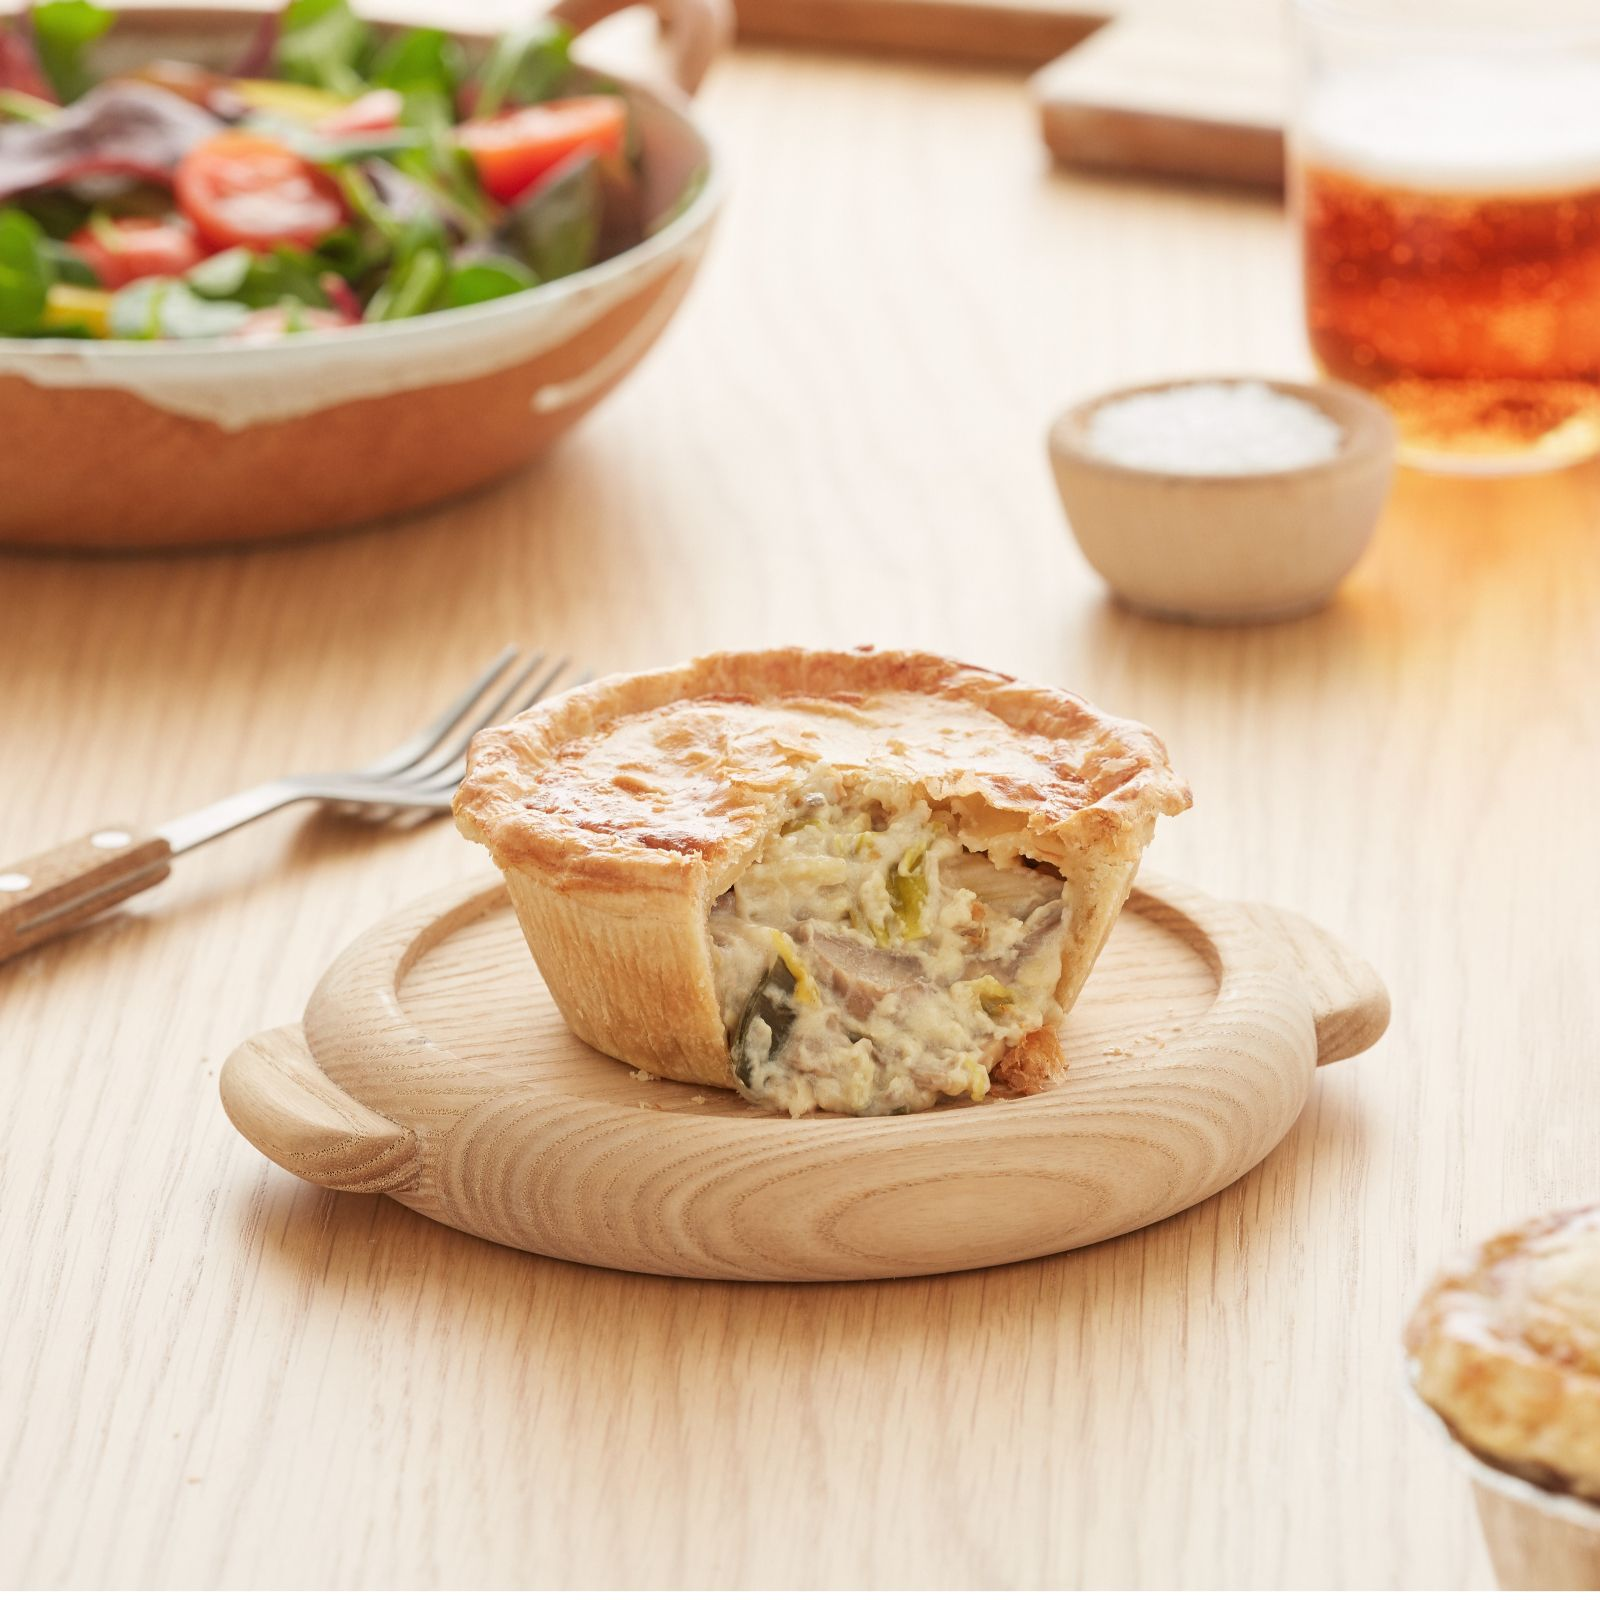 fe60e8dbac4a2 The Real Pie Company 12 Piece Meat Pie Selection - QVC UK